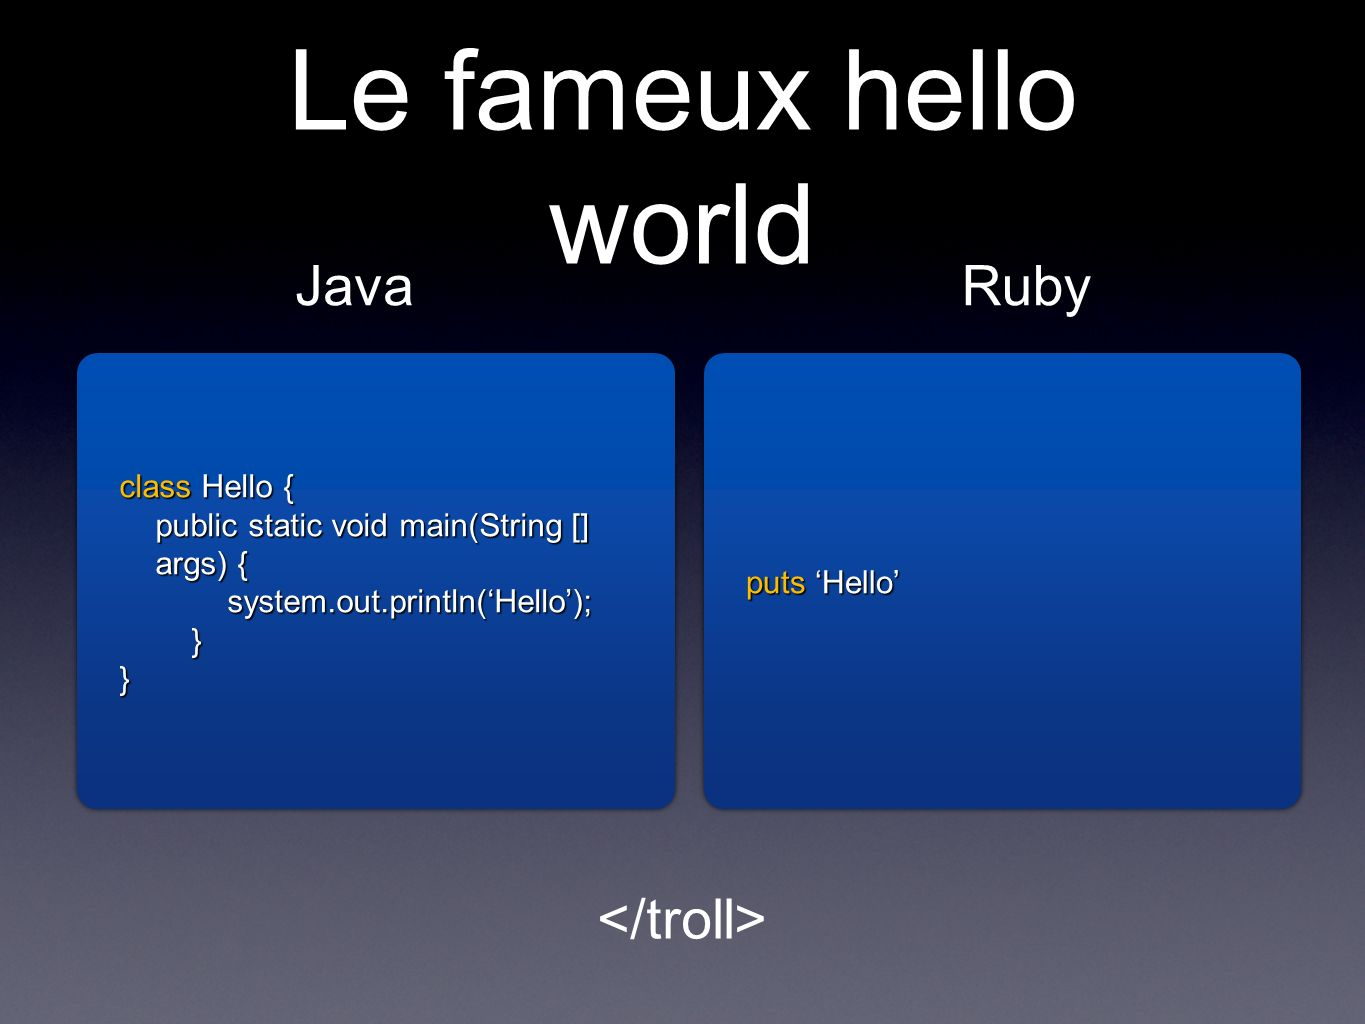 Le fameux hello world class Hello { public static void main(String [] args) { system.out.println(Hello);}} class Hello { public static void main(String [] args) { system.out.println(Hello); } } JavaRuby puts Hello